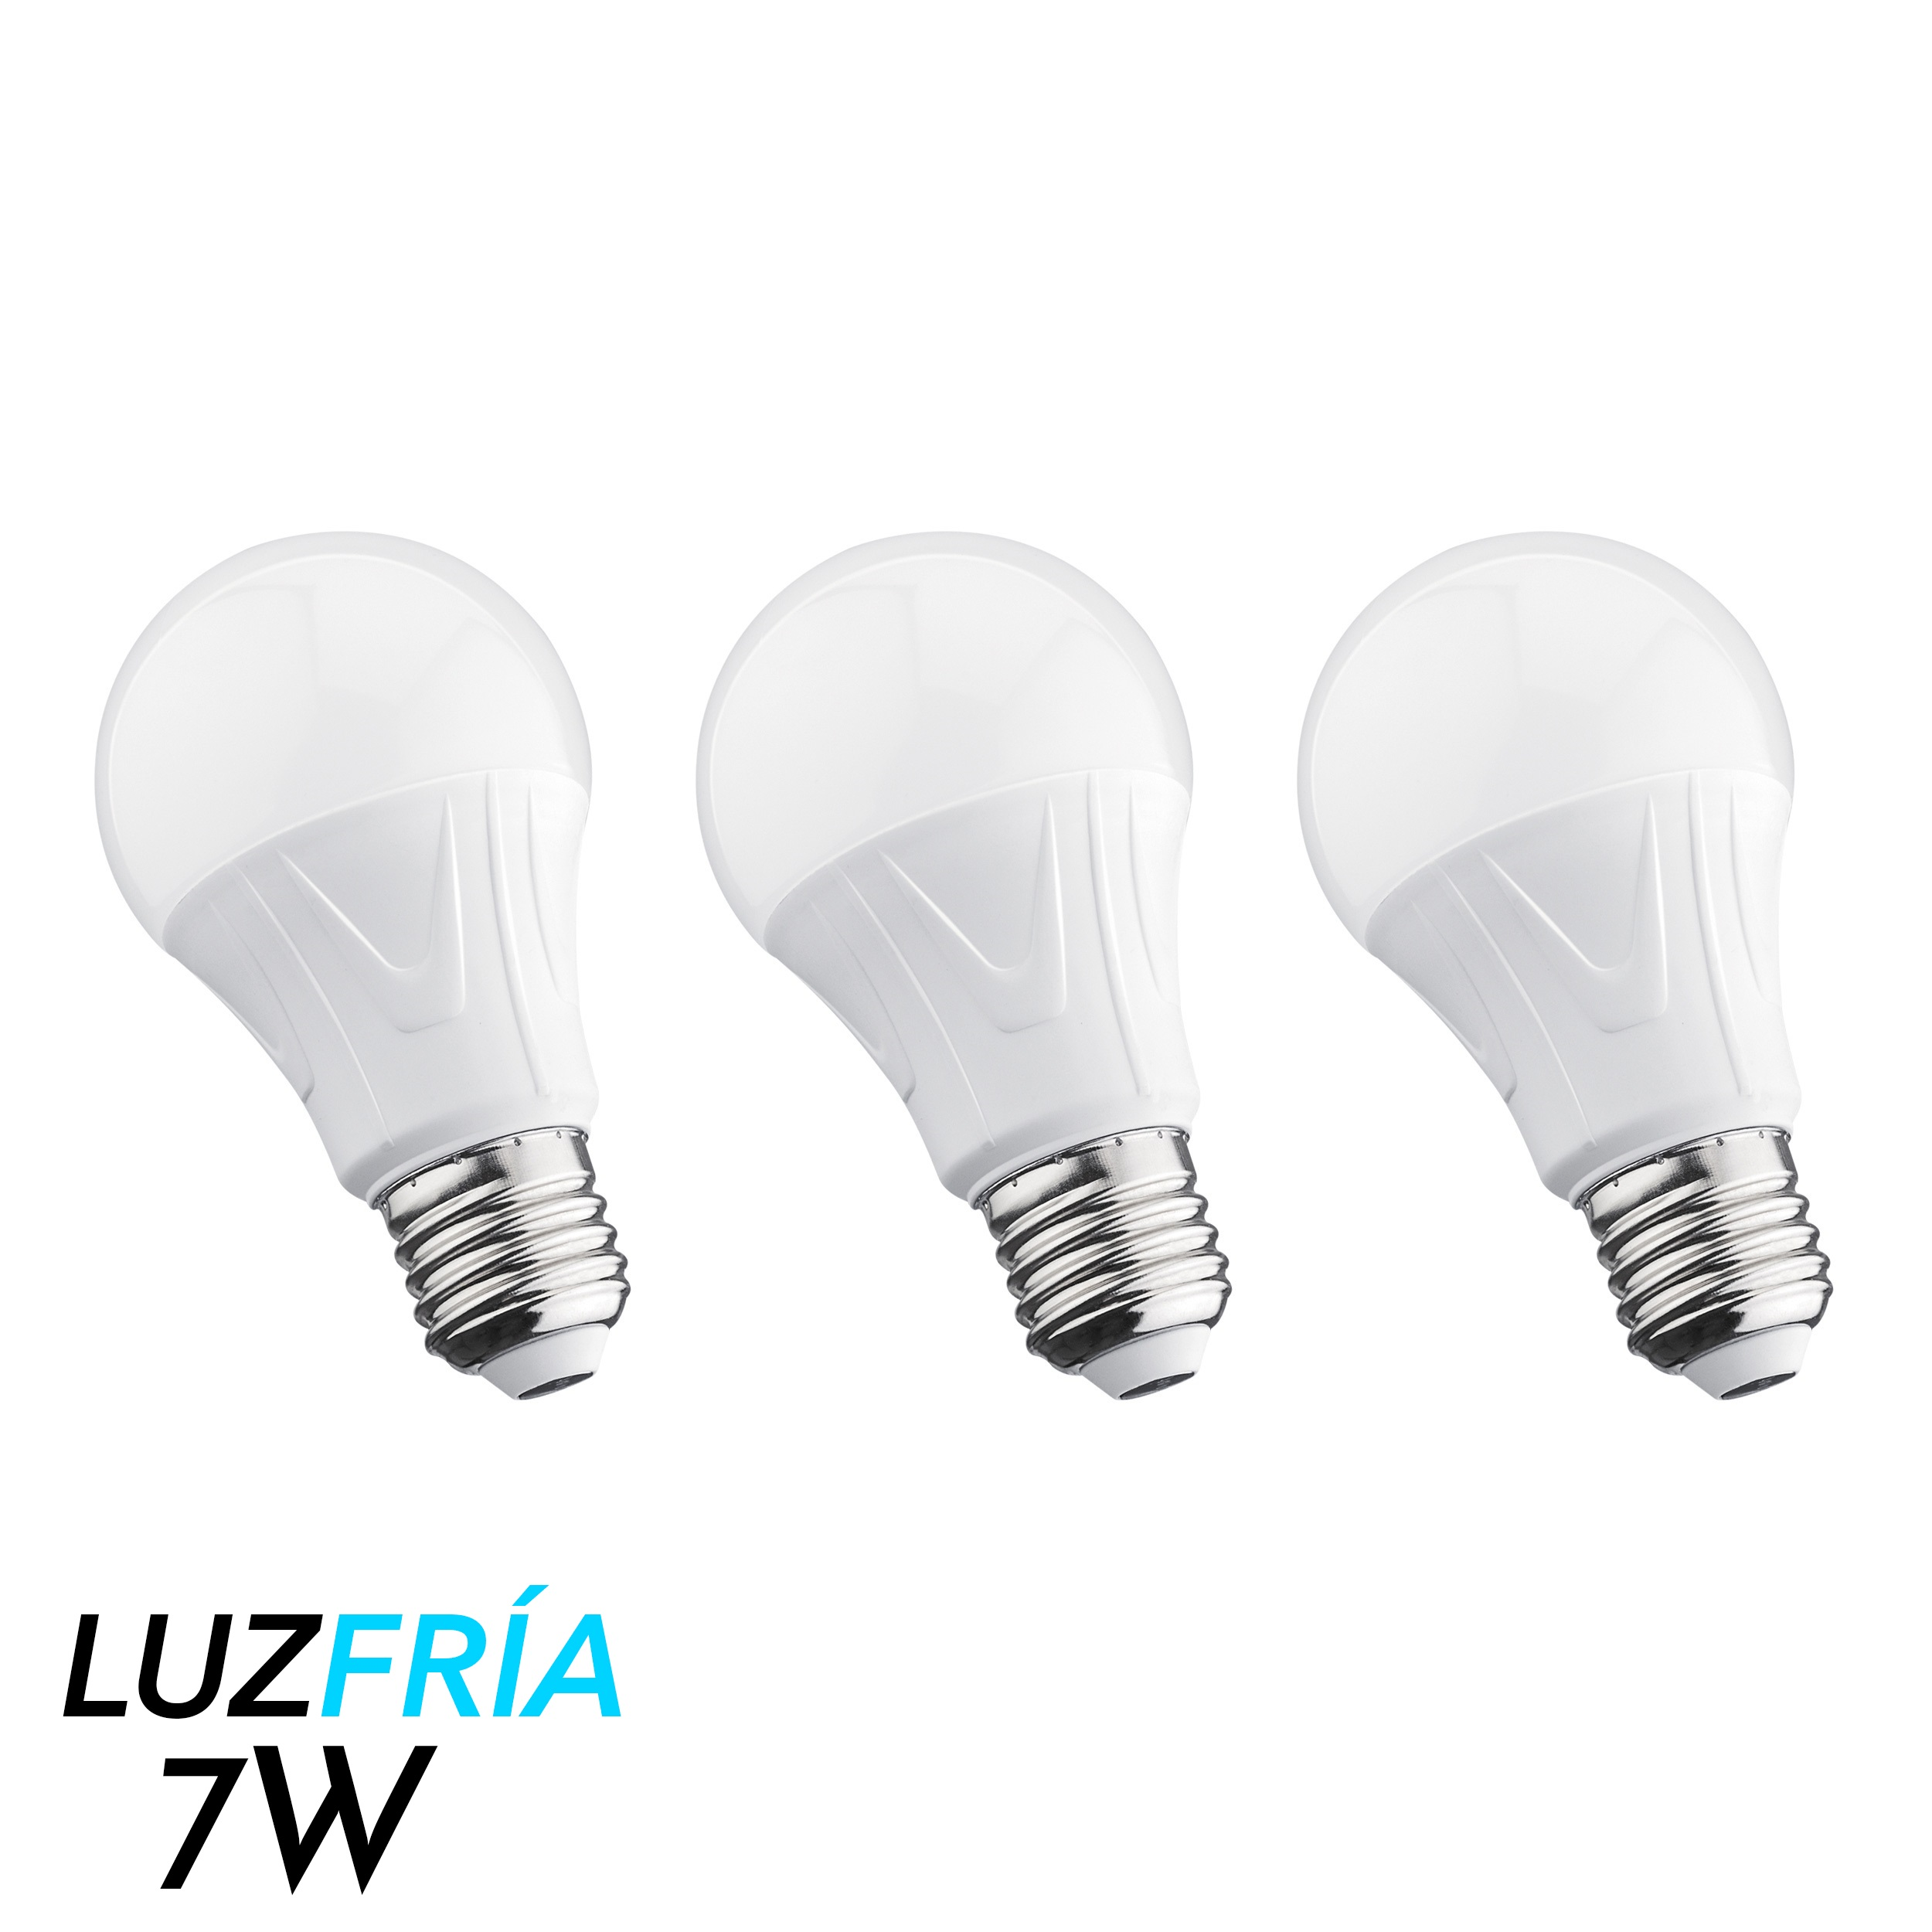 3 focos led de luz fr a 7 w for Focos led para casa